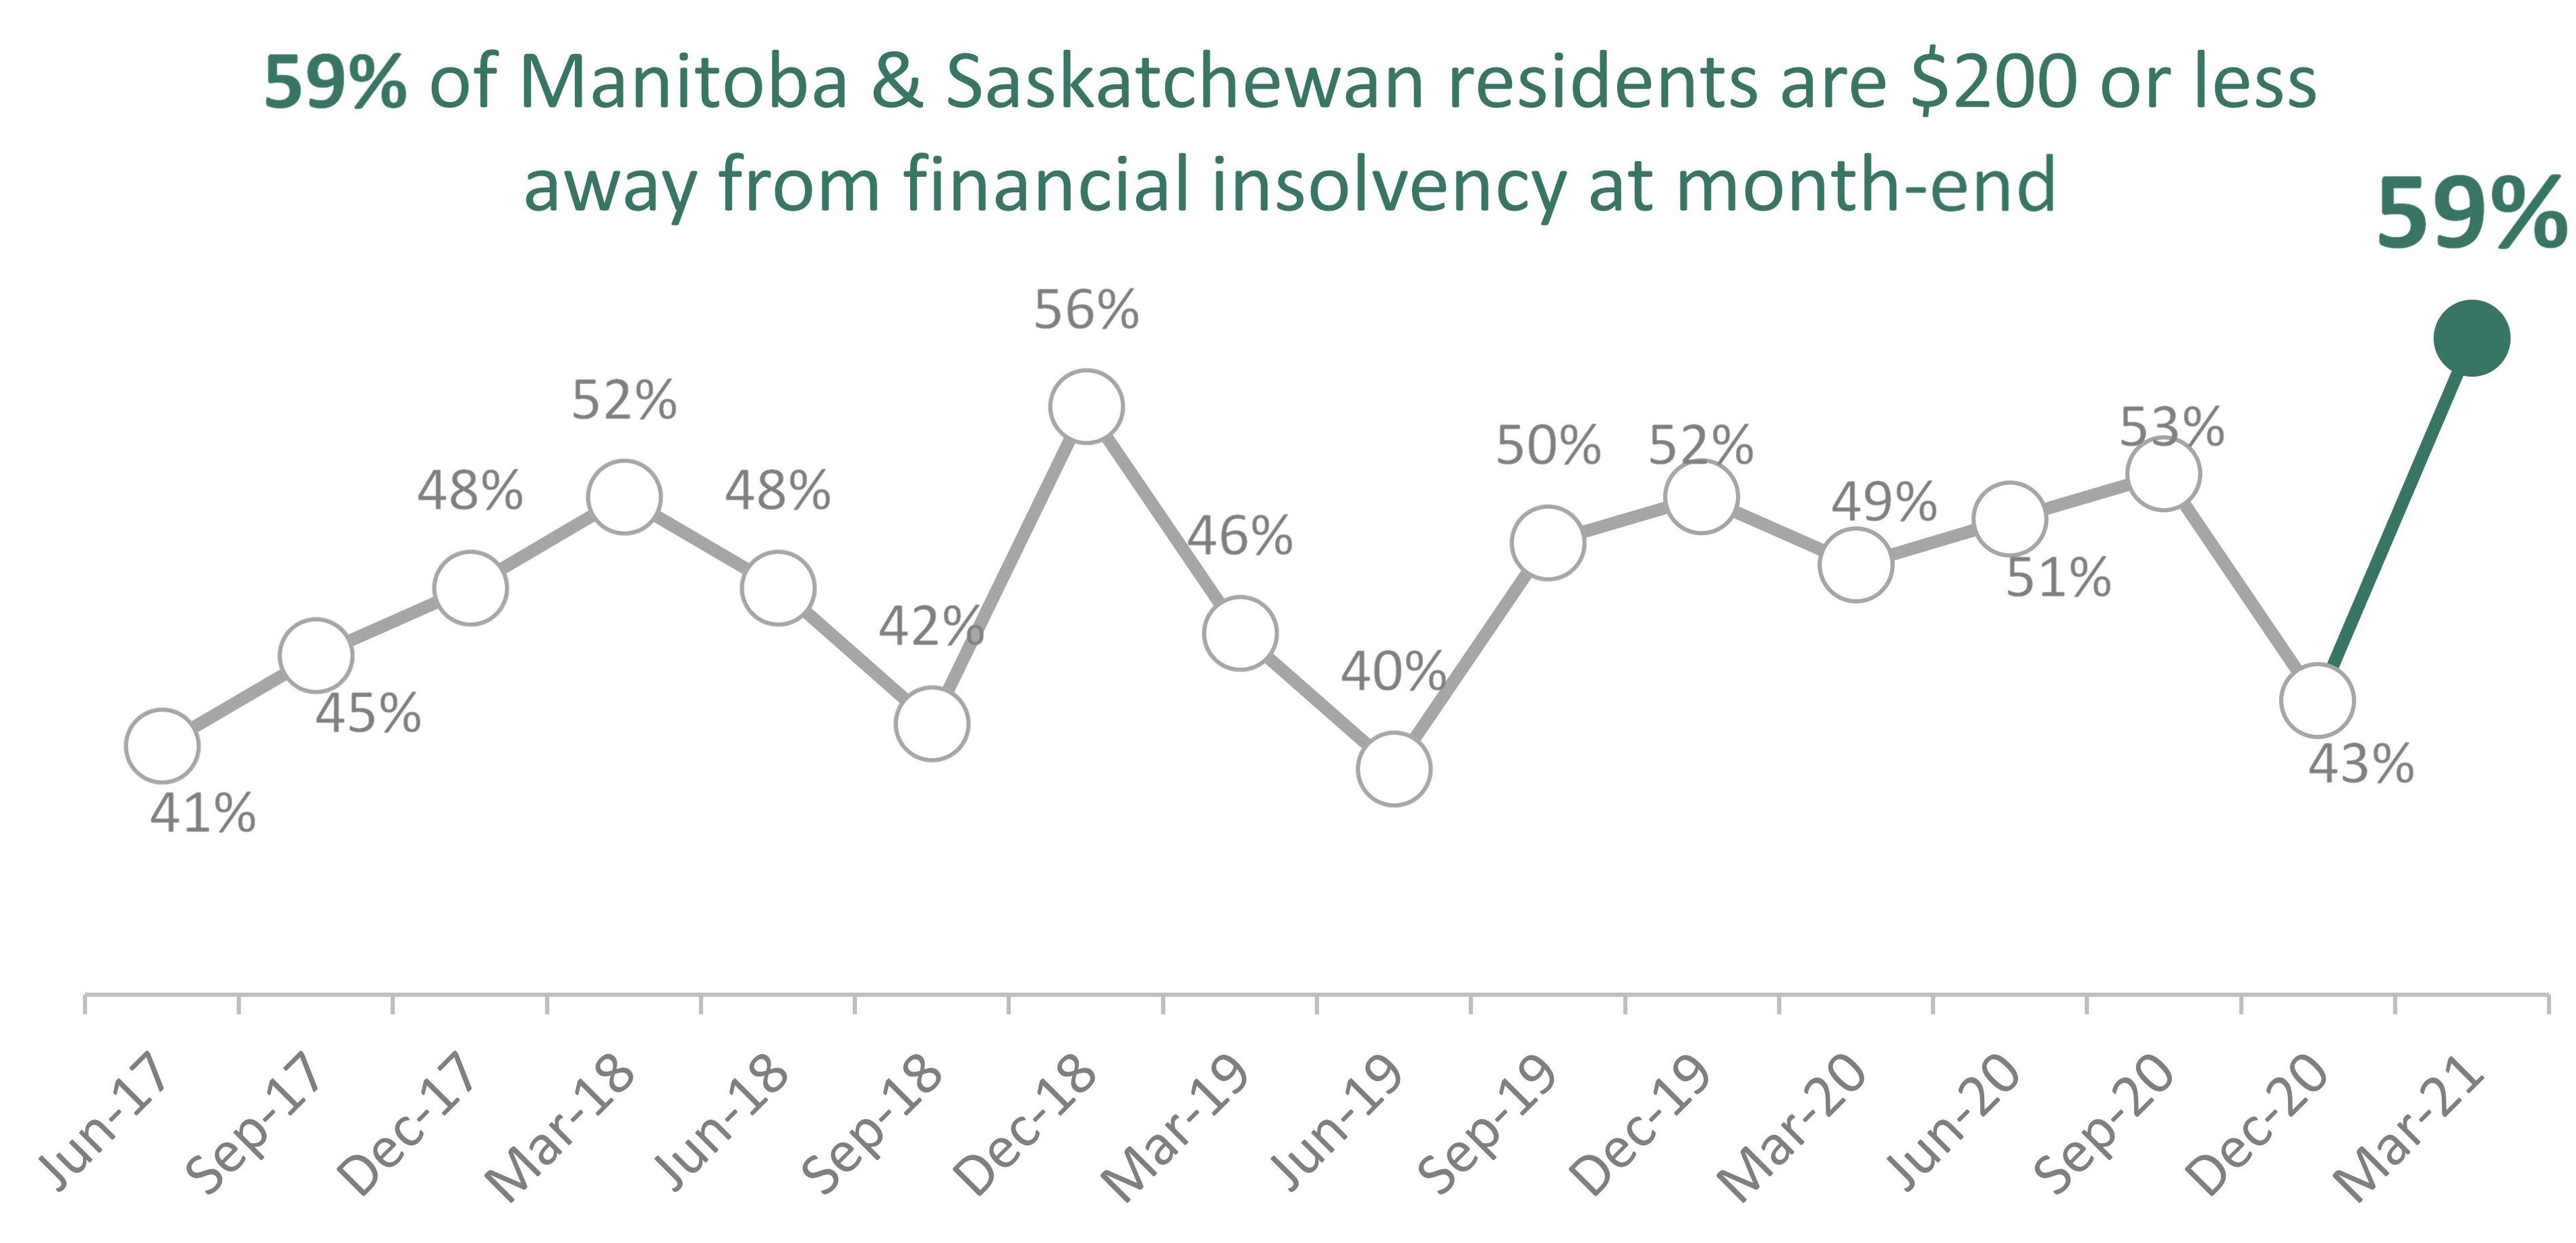 Caption: The number of Manitoba and Saskatchewan residents who are $200 or less from financial insolvency at month-end jumped 16 points since December 2020, reaching a five-year high.